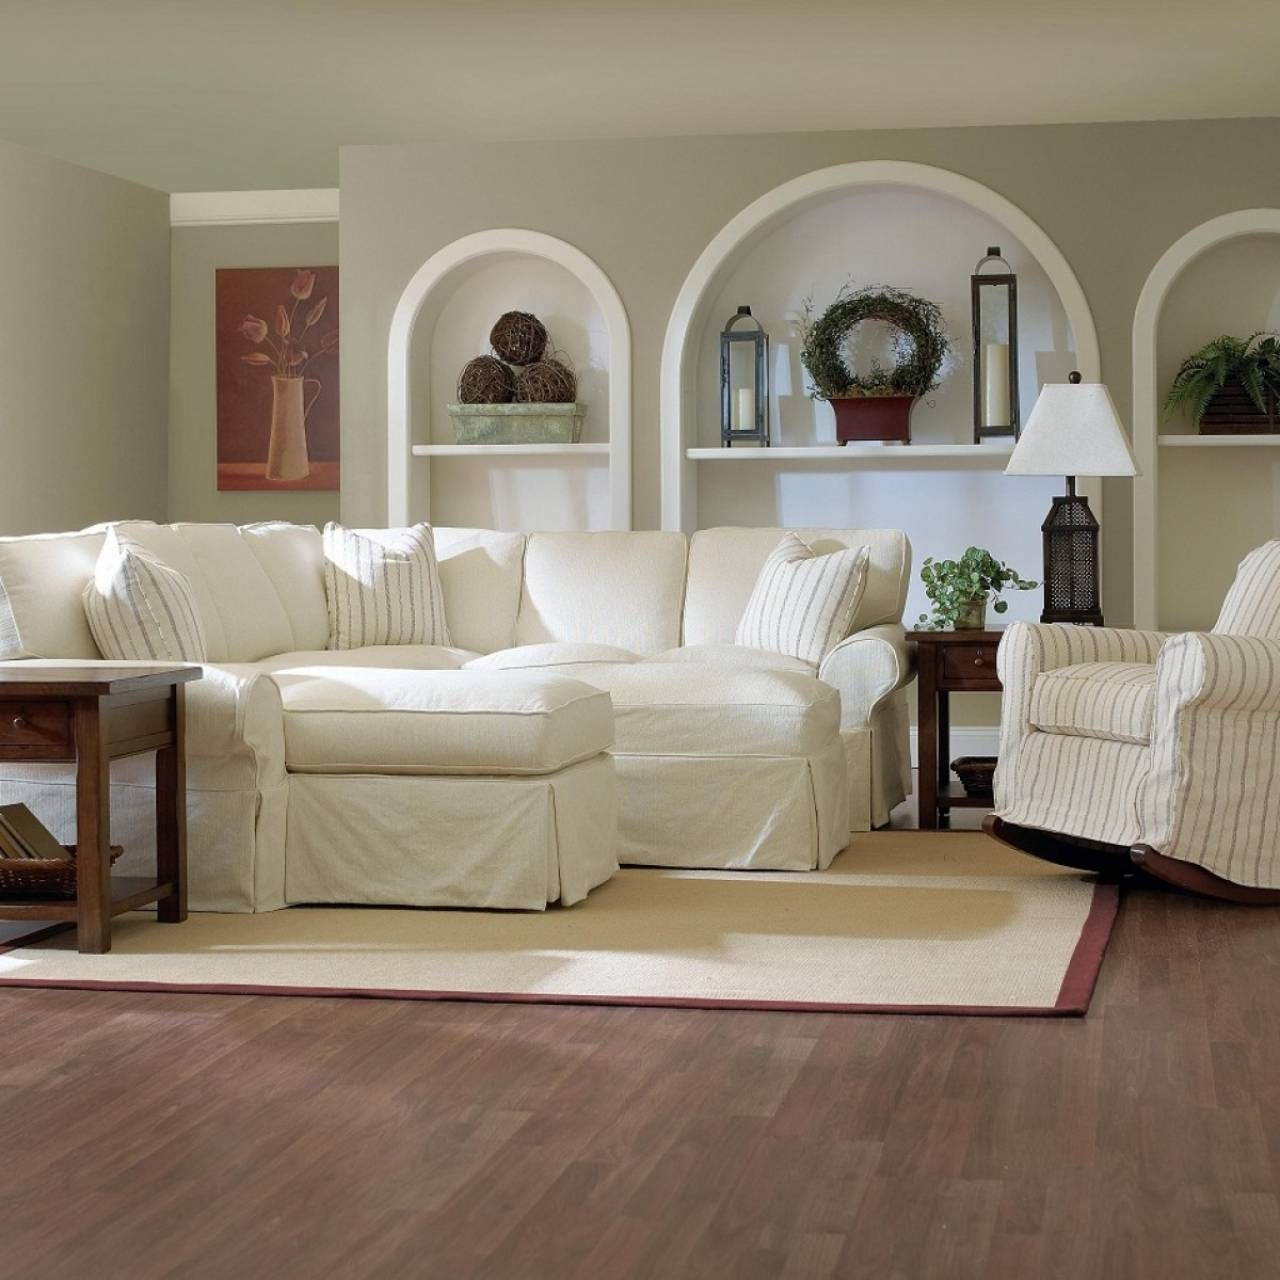 Furniture: Slipcovers For Sectional That Applicable To All Kinds regarding Slipcover For Leather Sectional Sofas (Image 12 of 30)